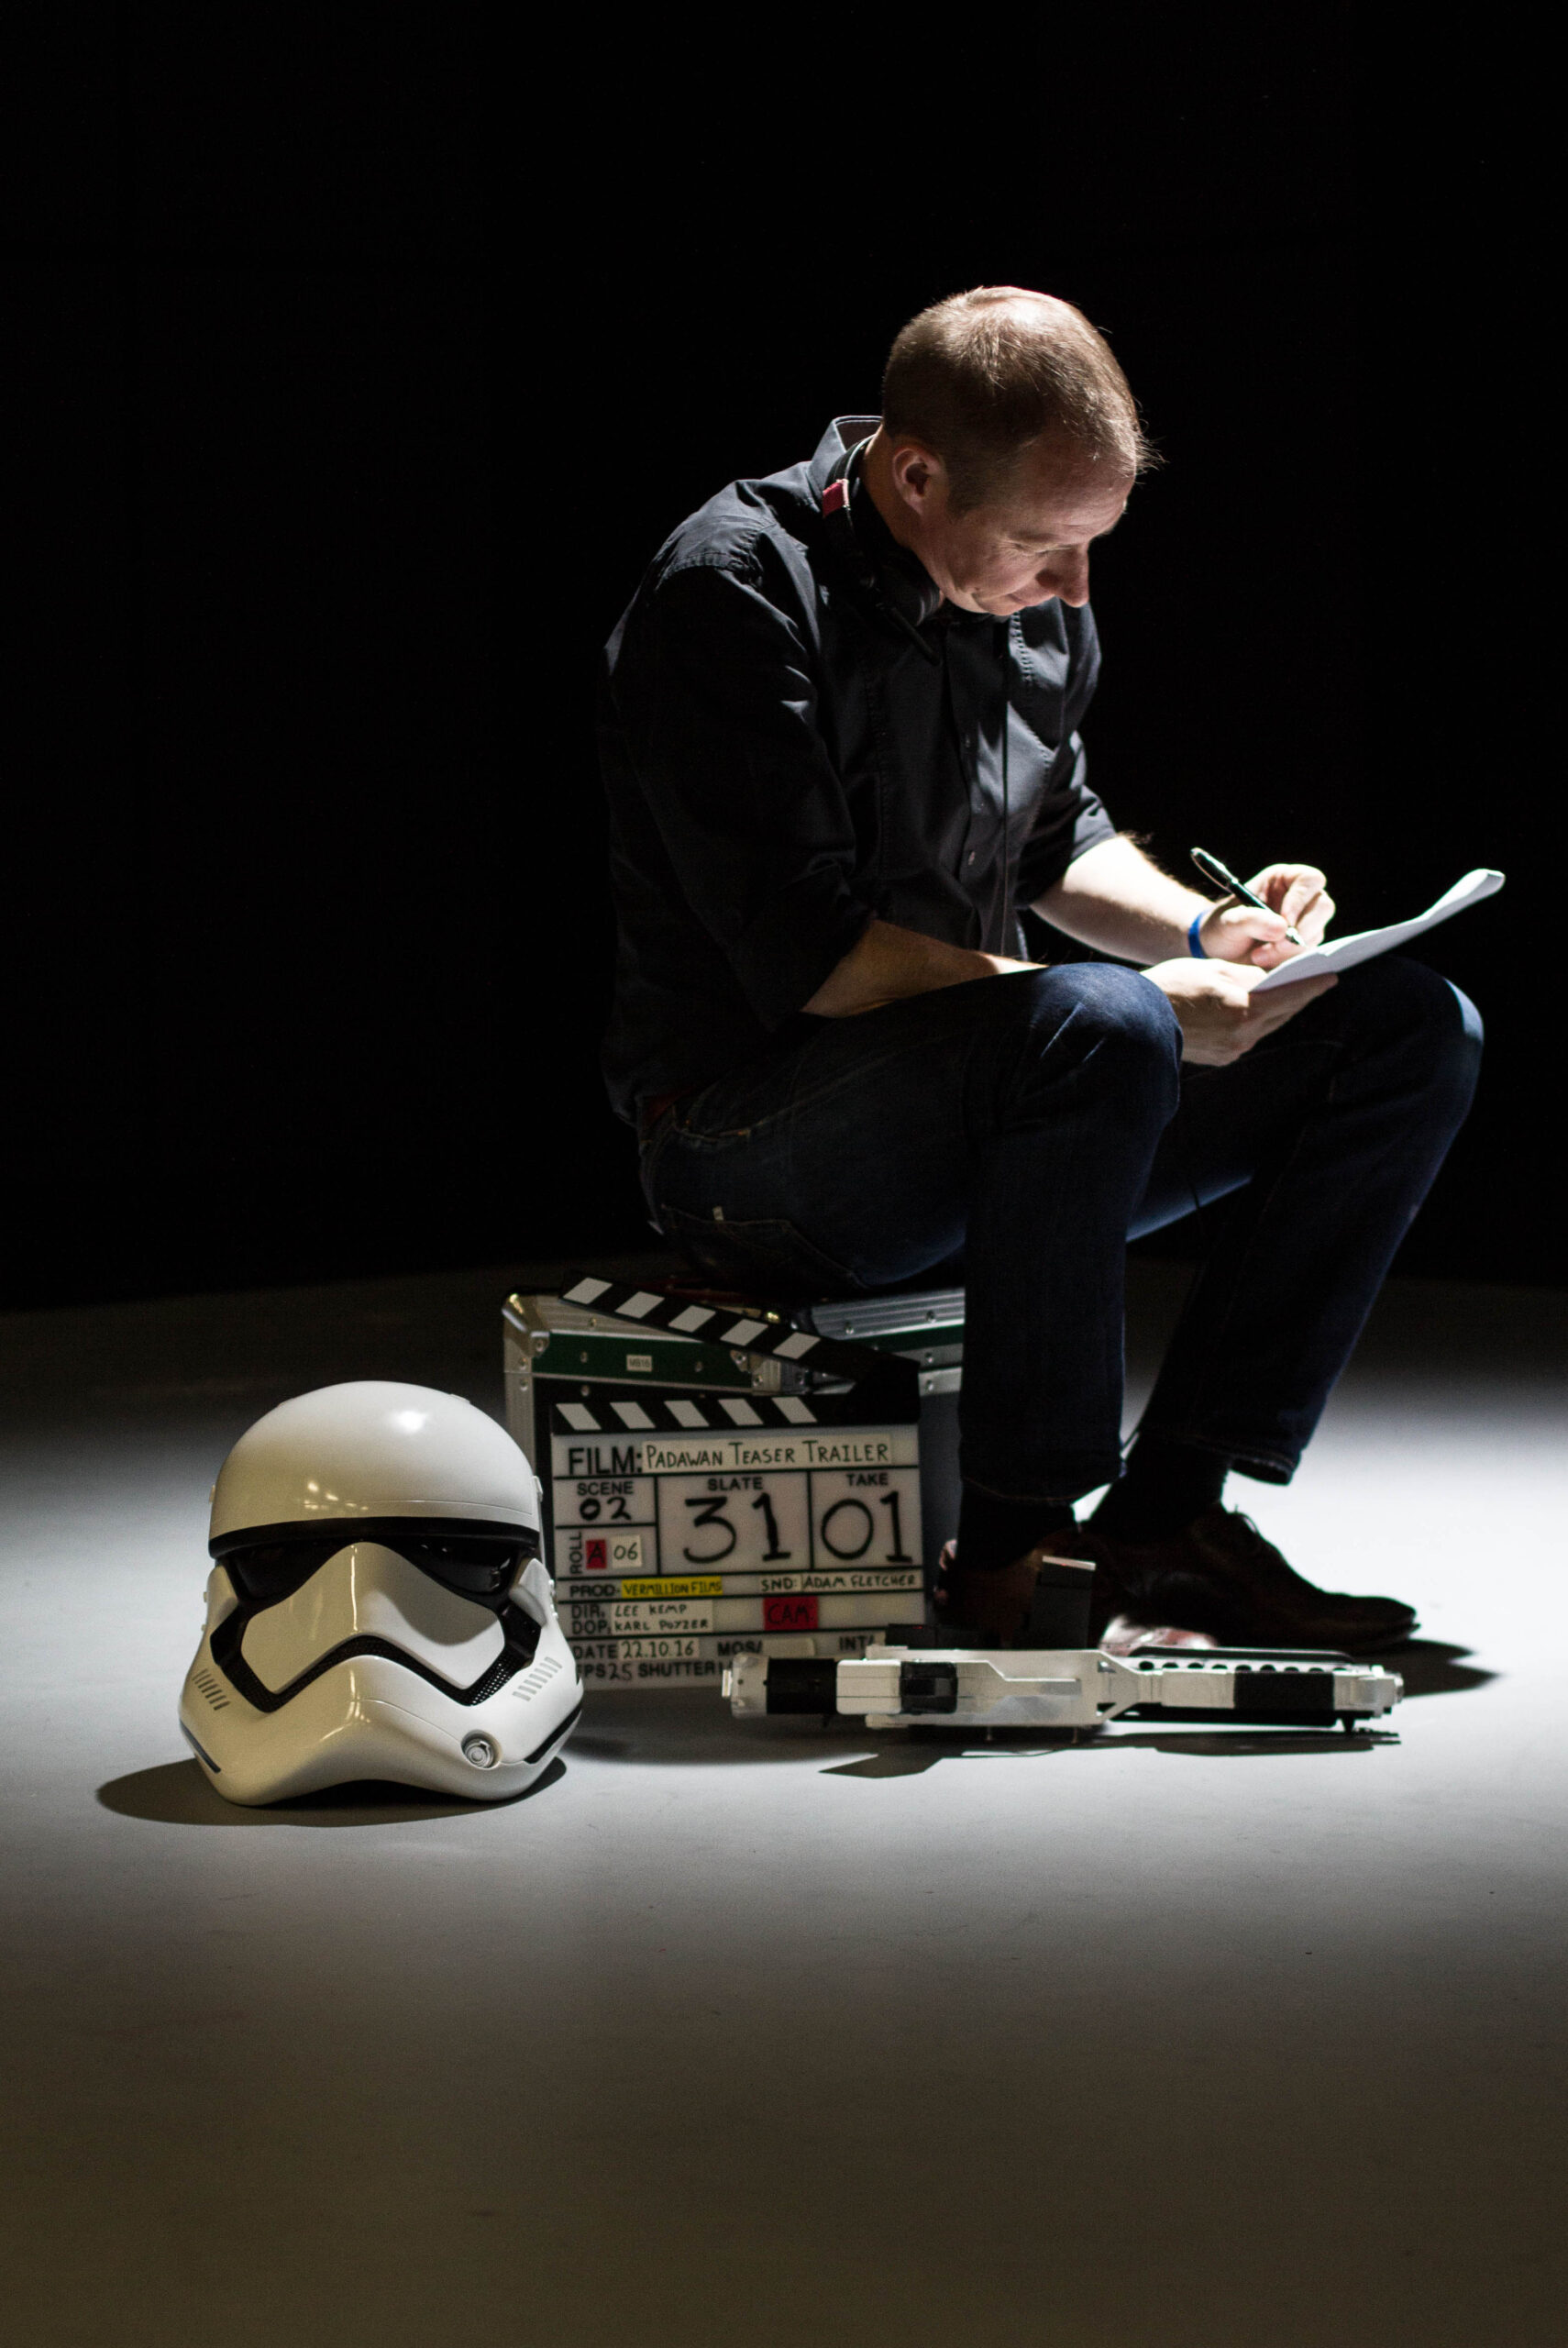 Lee sitting on a box by a stormtrooper helmet